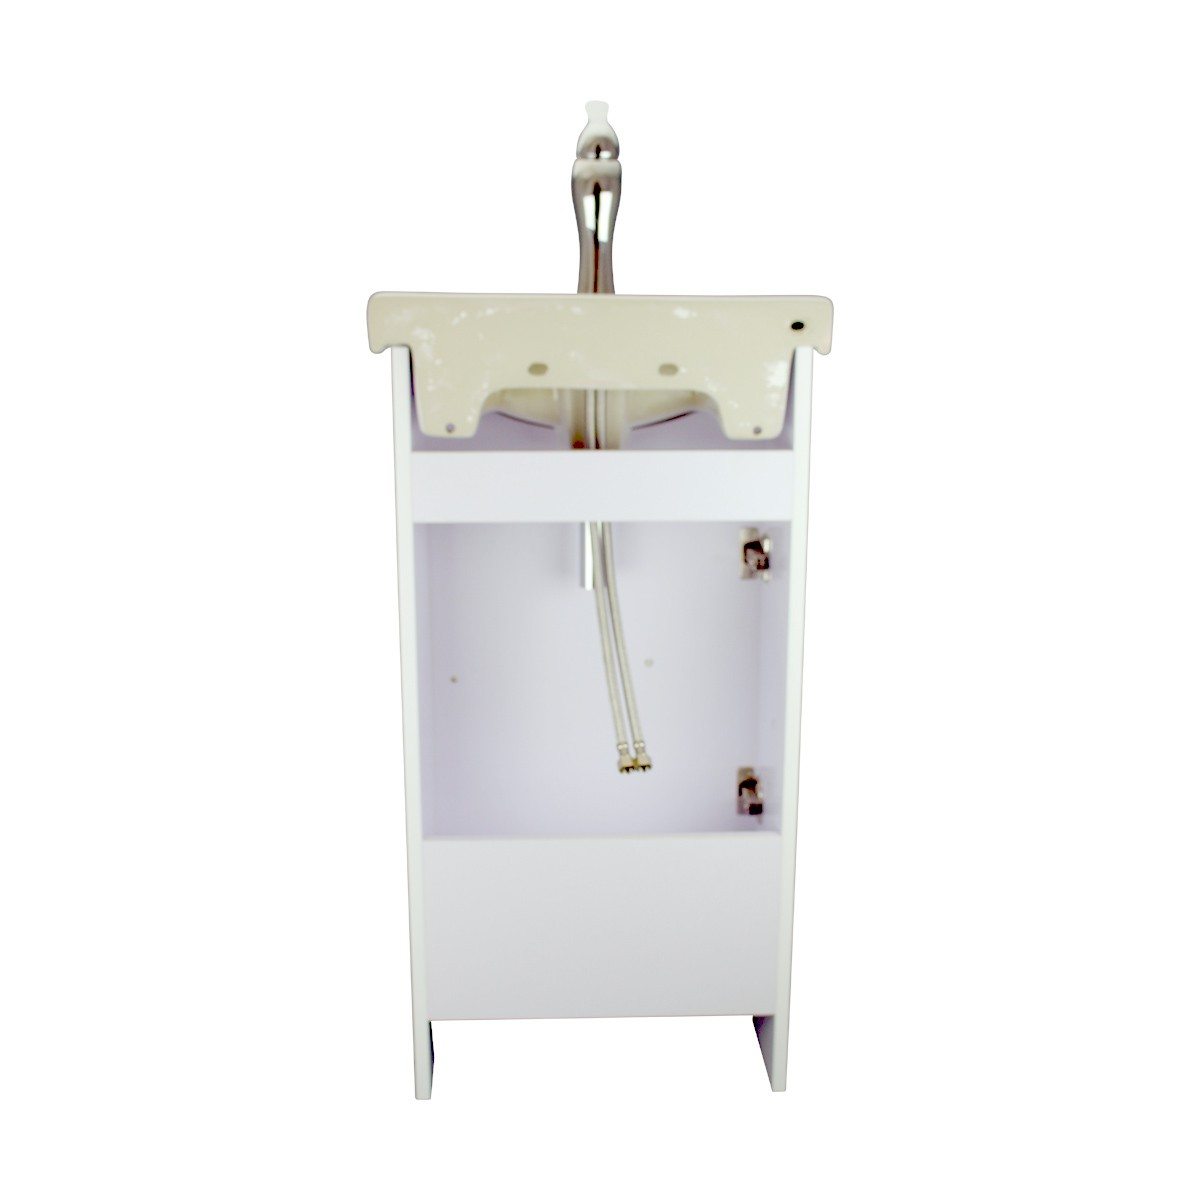 18 Small Bathroom Vanity Cabinet Sink with Faucet and Drain Renovators Supply Bathroom Cabinet Sink Vanity Sinks For Bathrooms Cabinet Sink